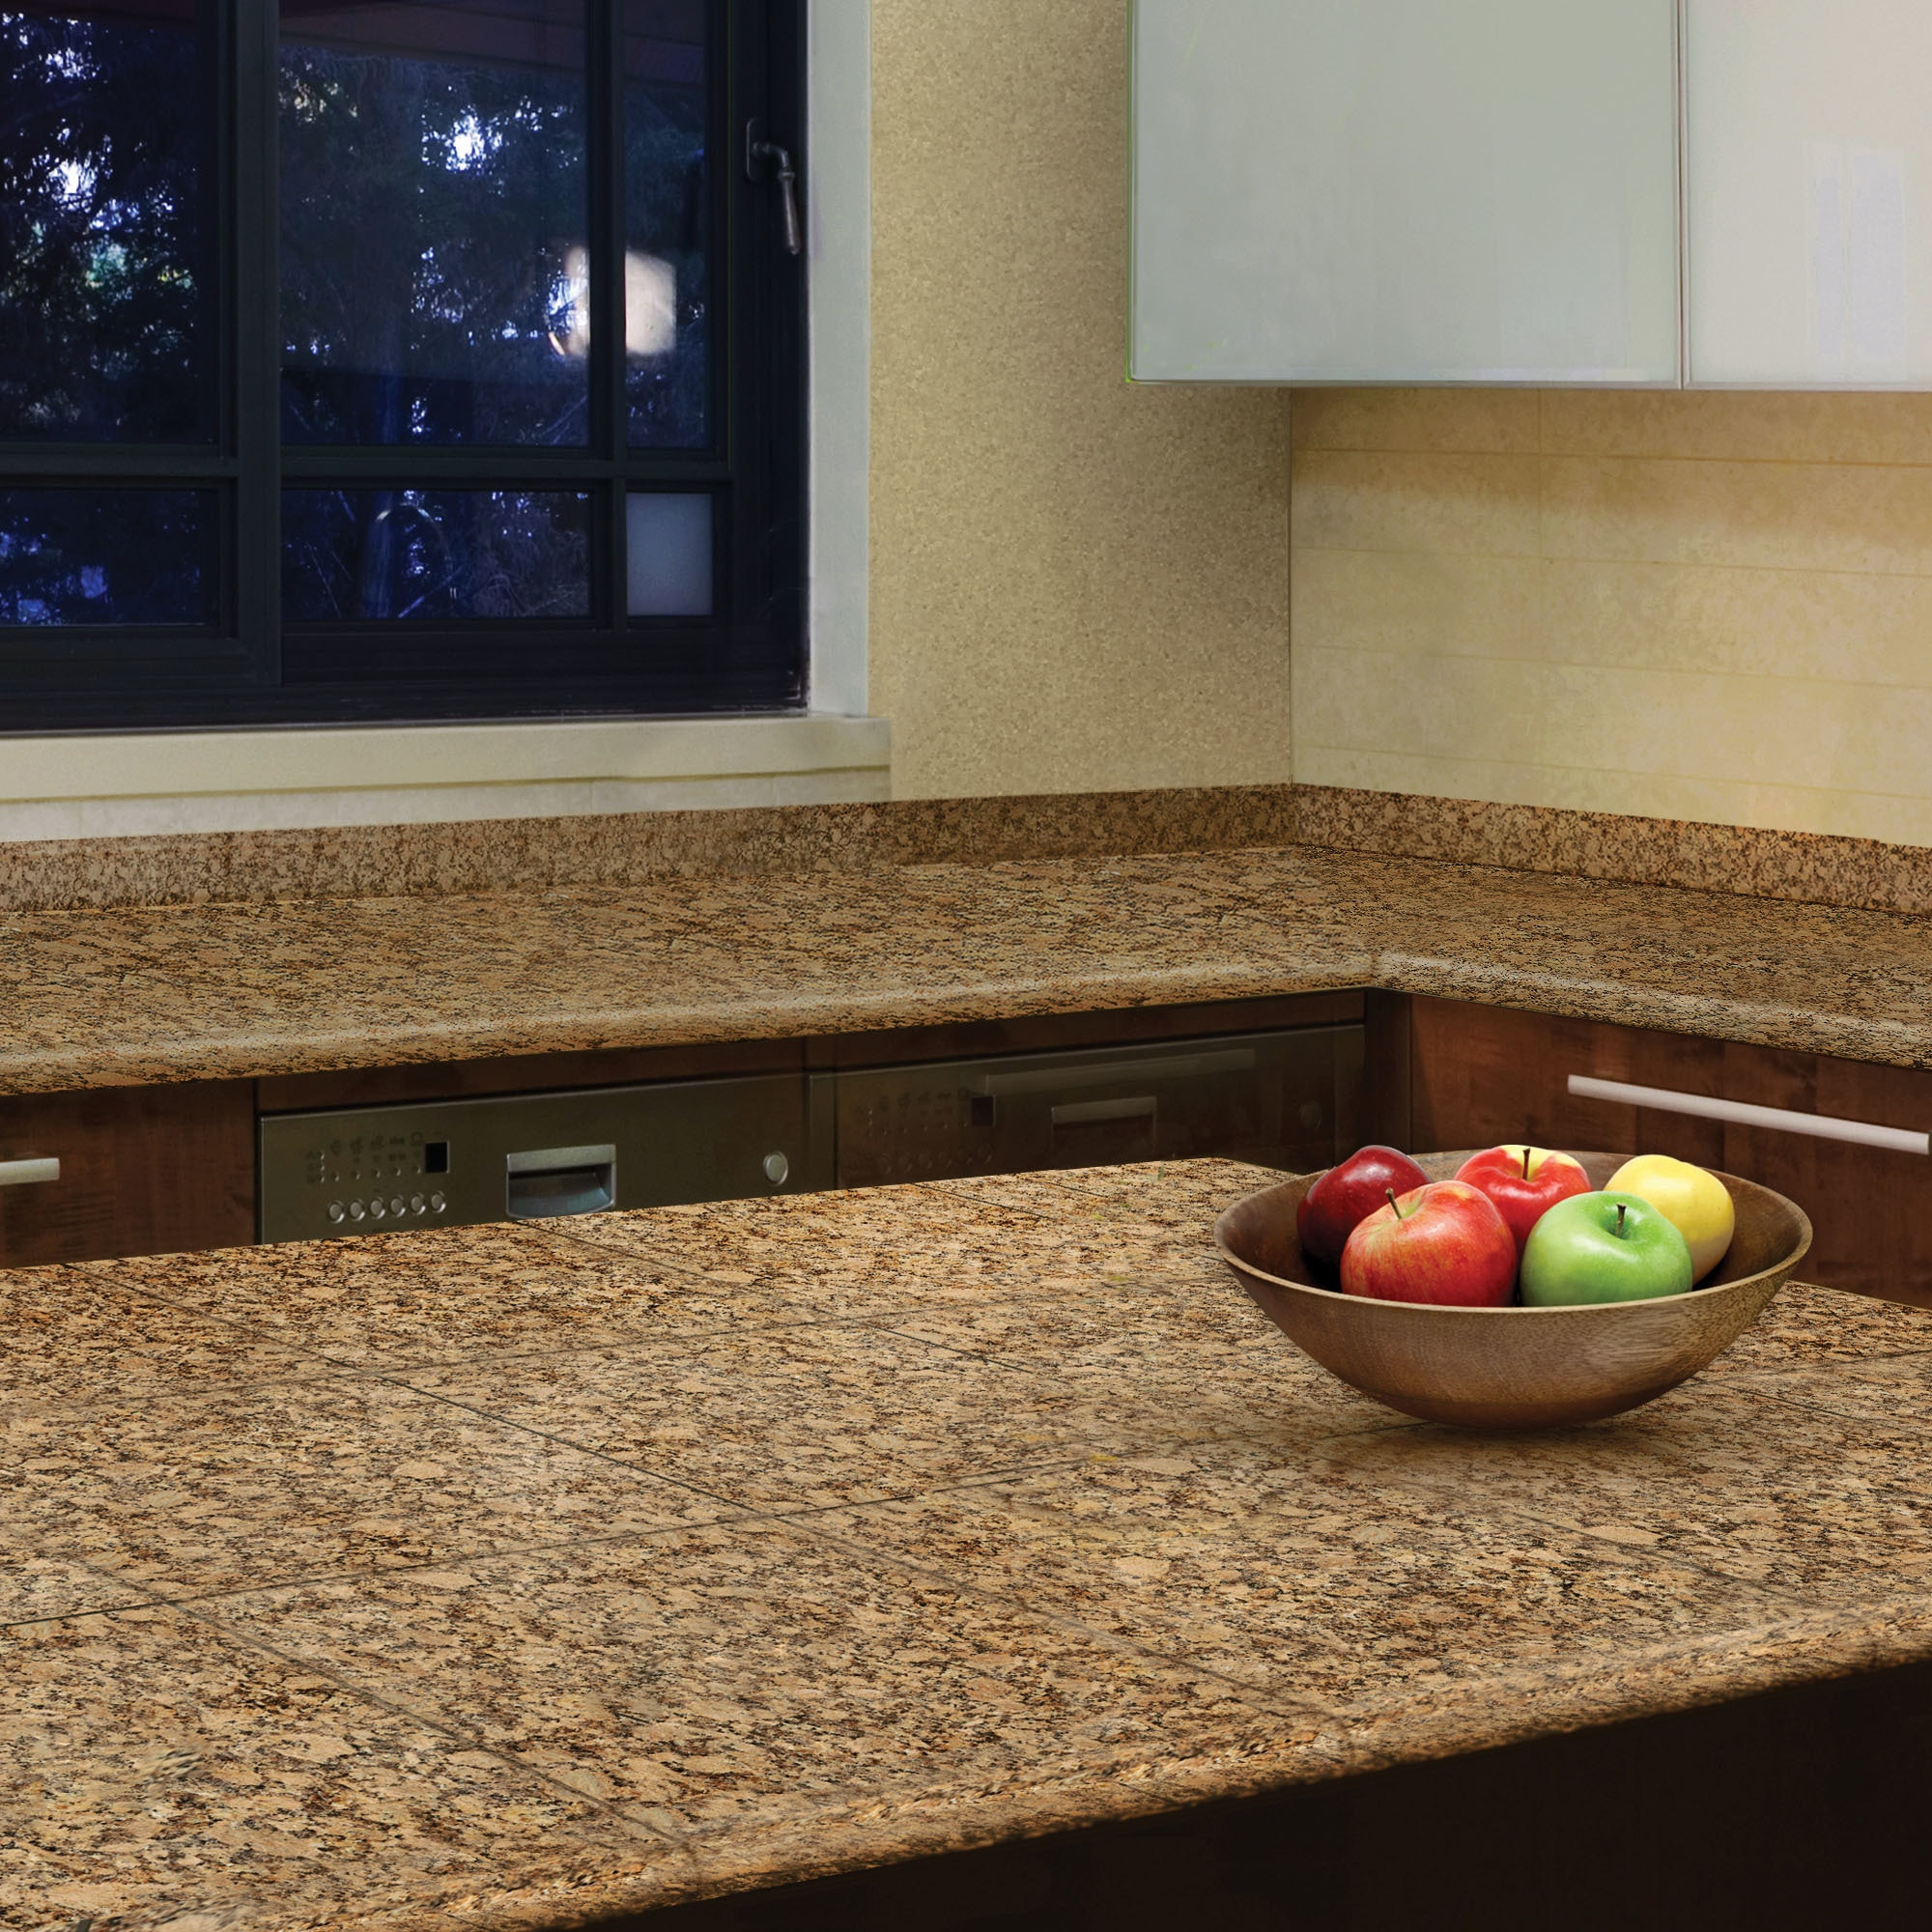 Pedra Granite Modular Kitchen Tiles   Topstone Collection Giallo Fiorito /  End Set. )